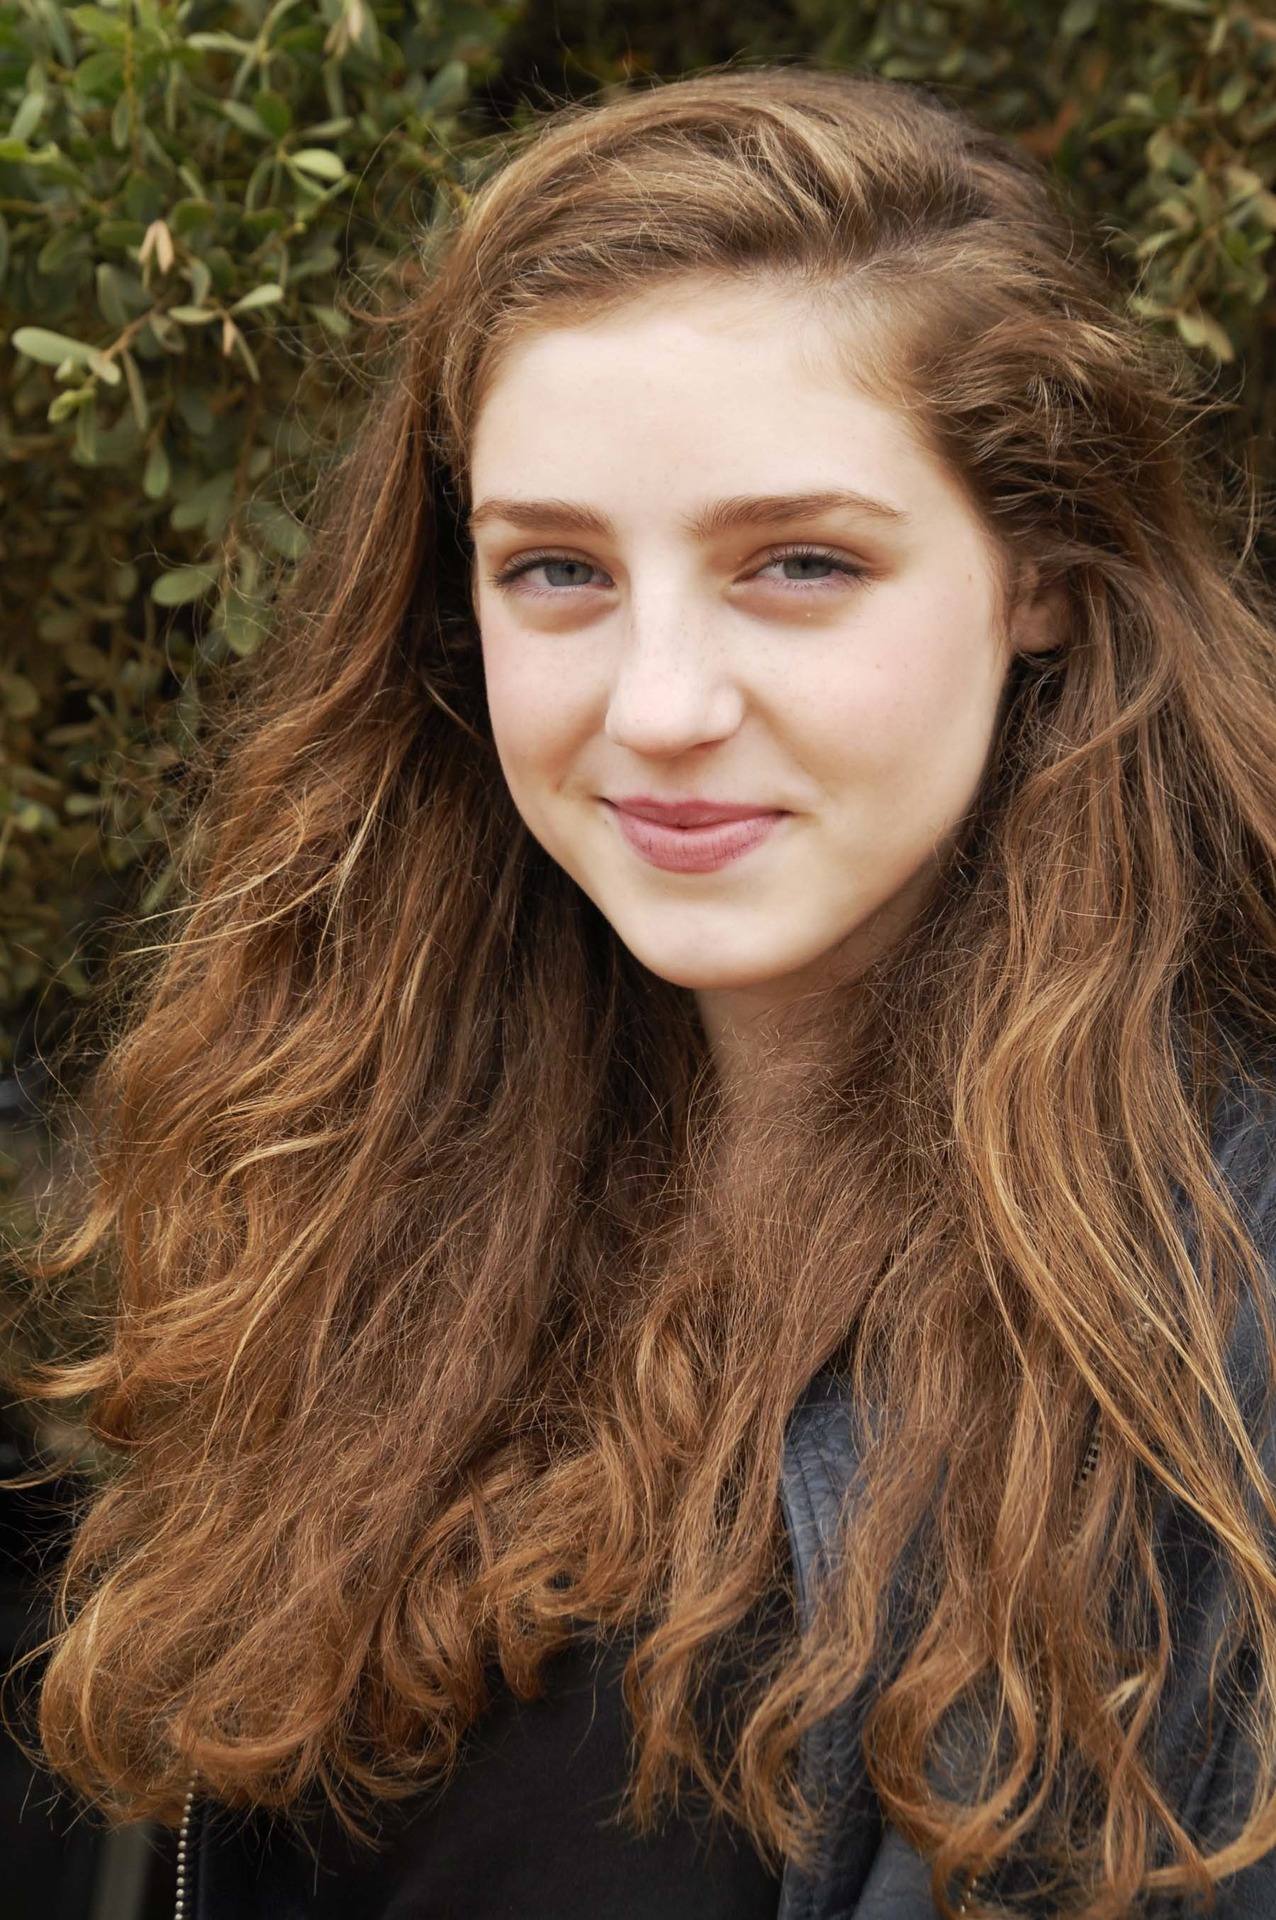 Birdy images Birdy HD wallpaper and background photos